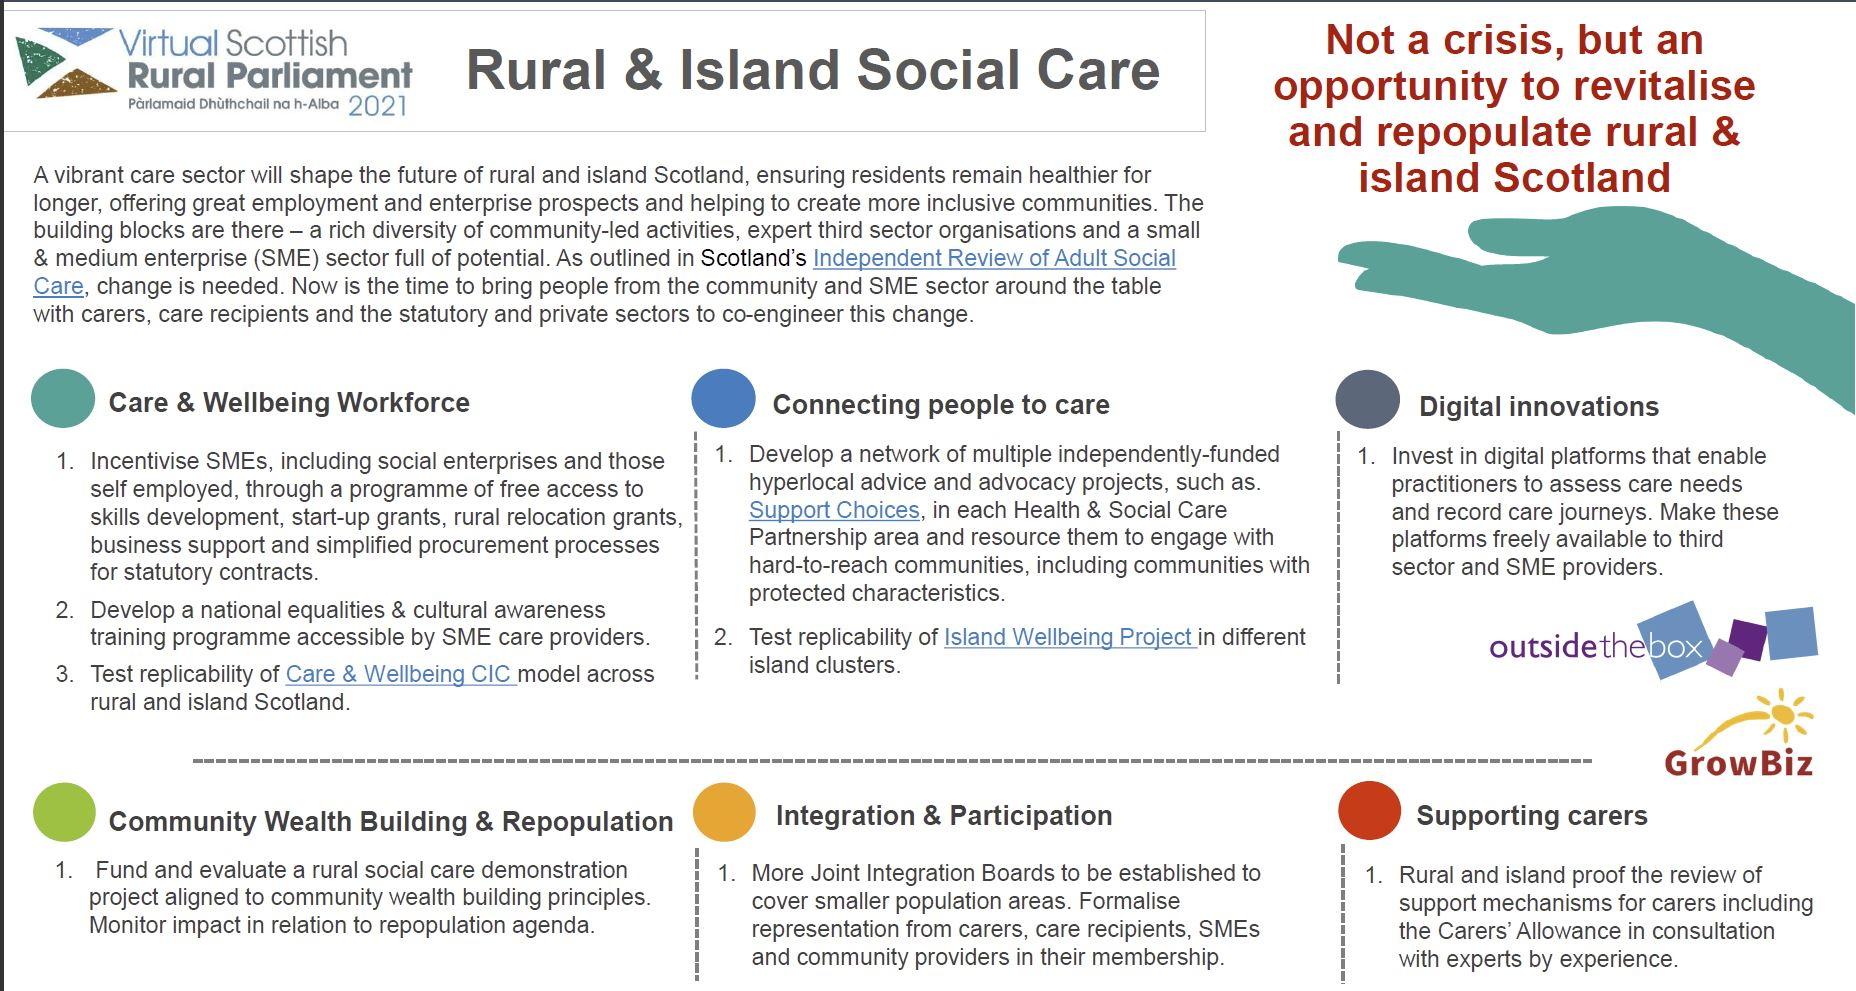 vRSP21 Session Recommendations - rural and island social care